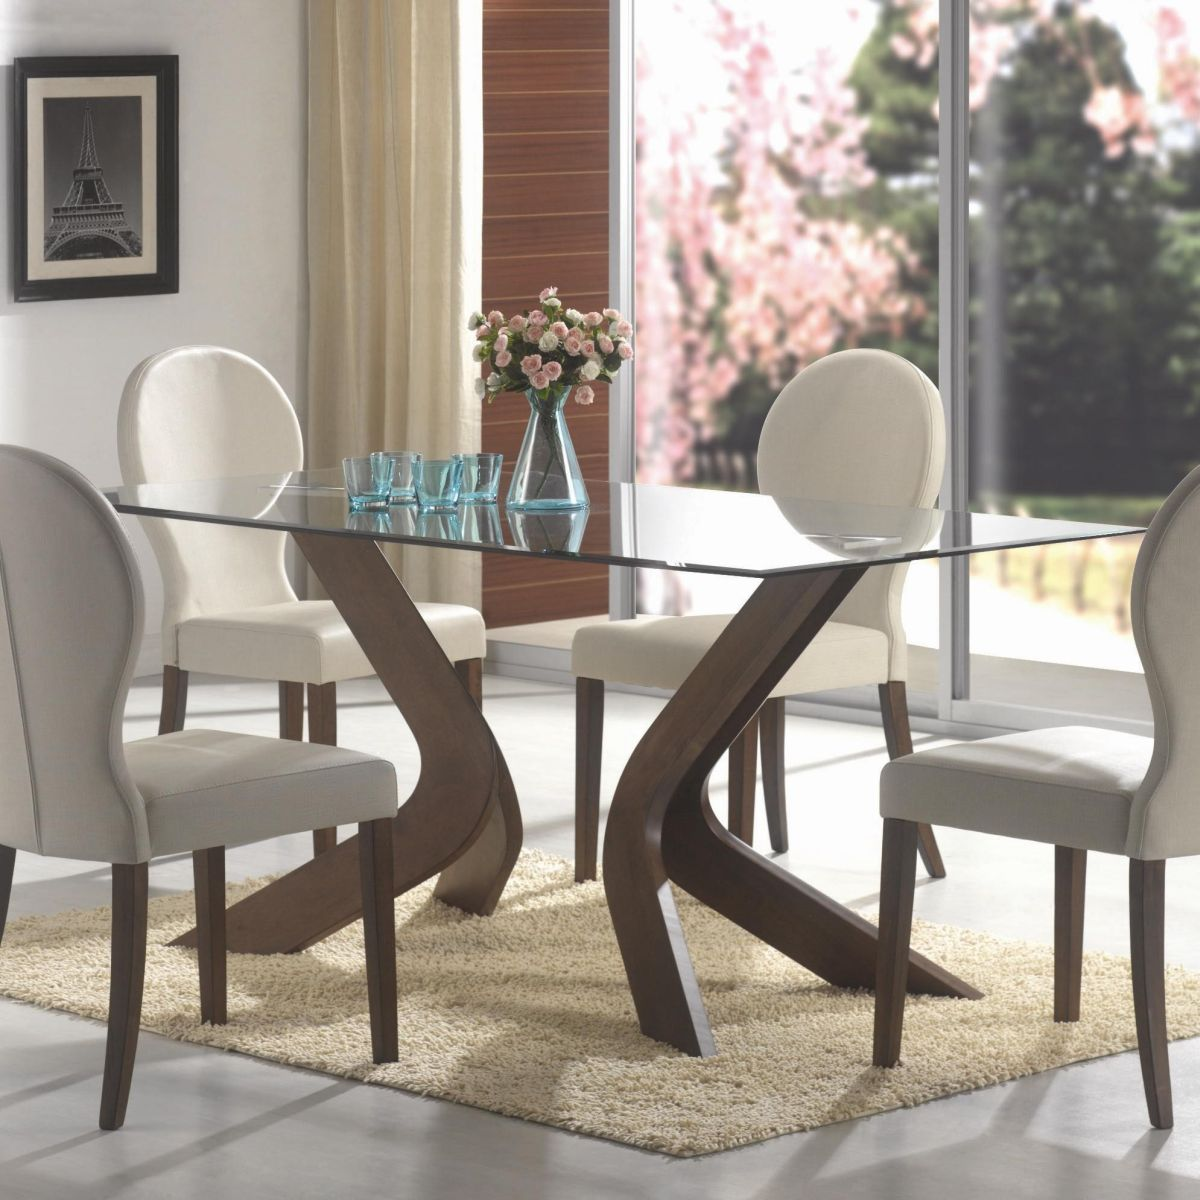 glass top dining table kitchen table las vegas Oval back dining chairs and glass top table